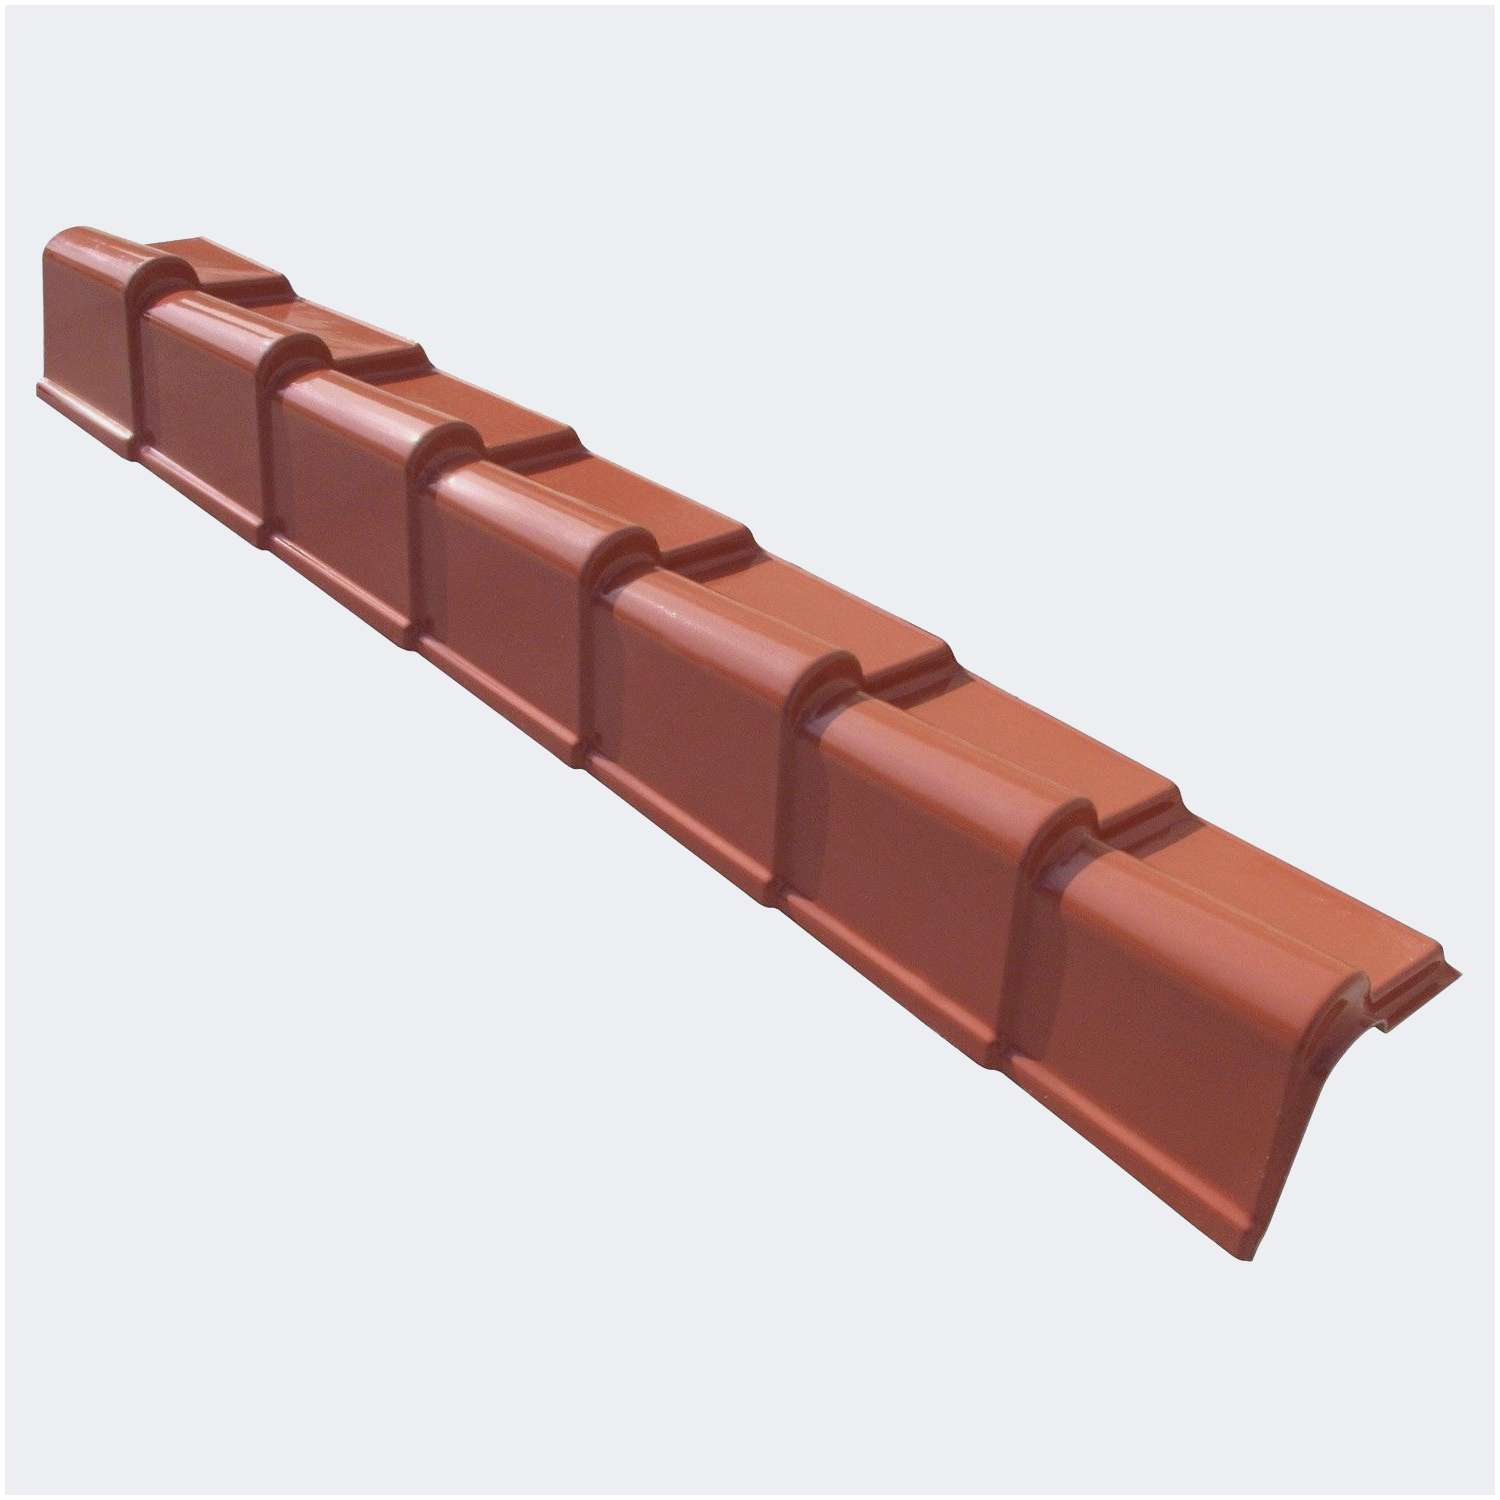 Tuile Canal Brico Depot Gamboahinestrosa Pour Colle Shingle Brico Depot Idees Conception Jardin Idees Conception Jardin